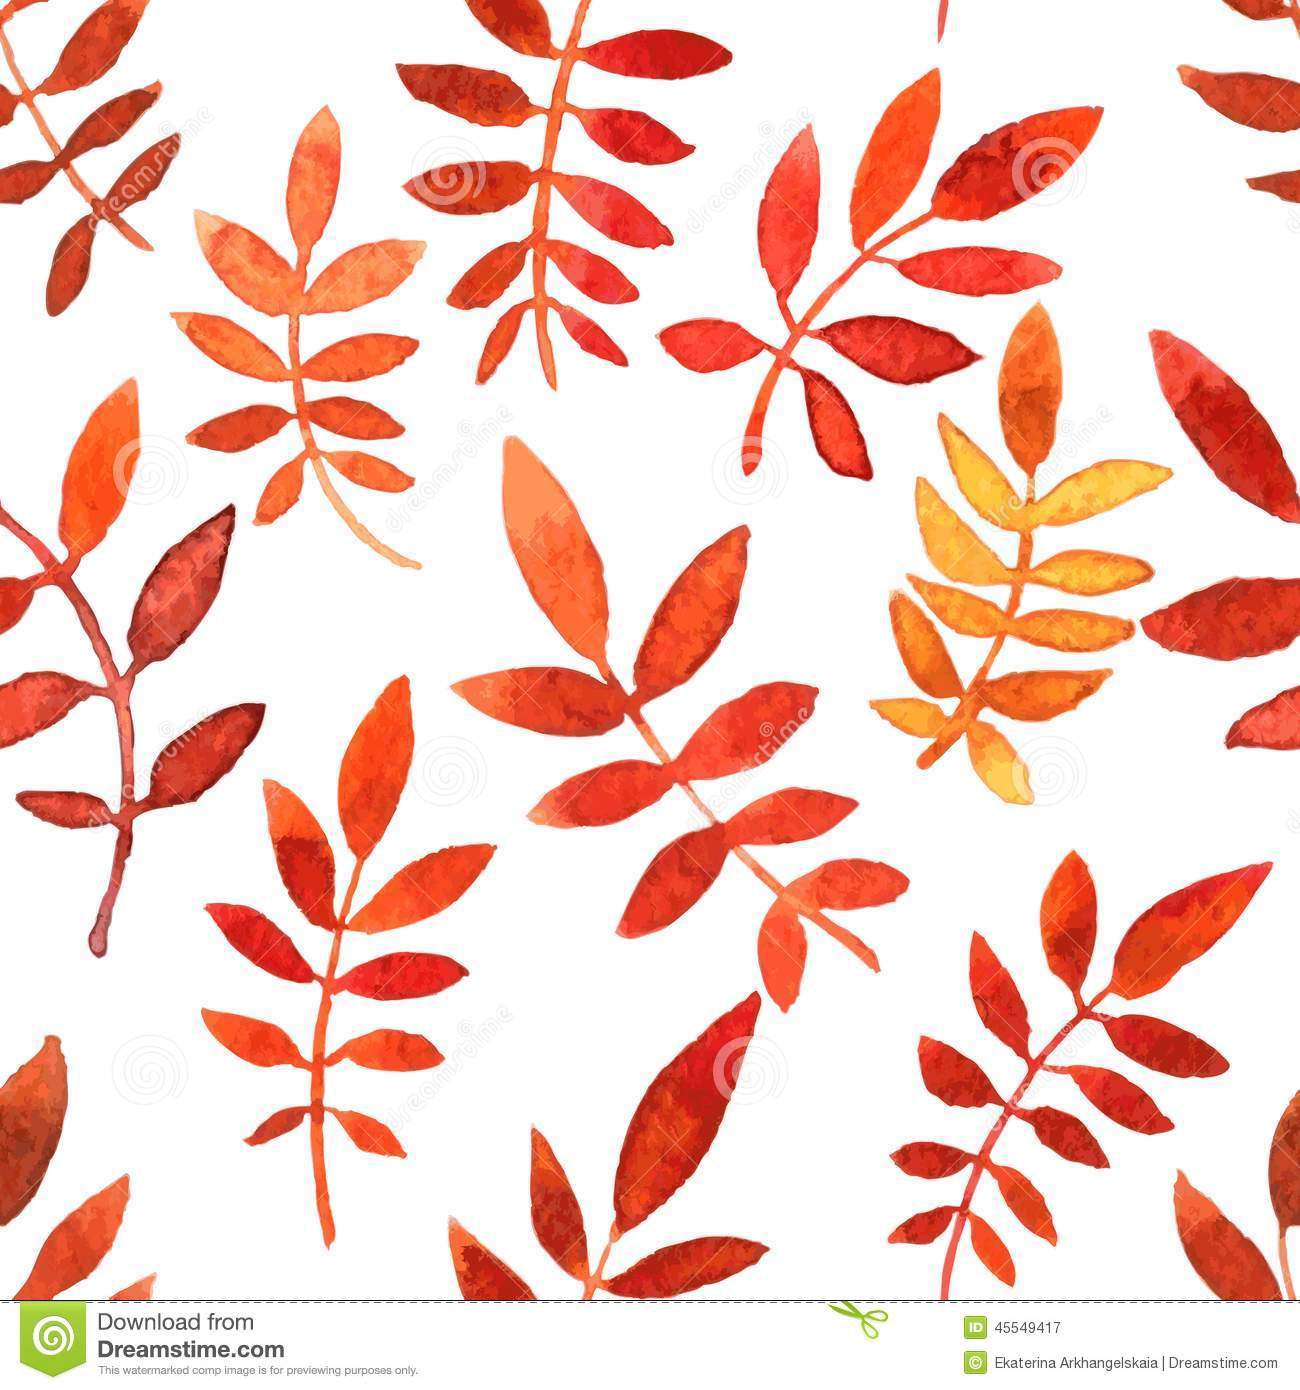 red leaves wallpaper pattern - photo #14